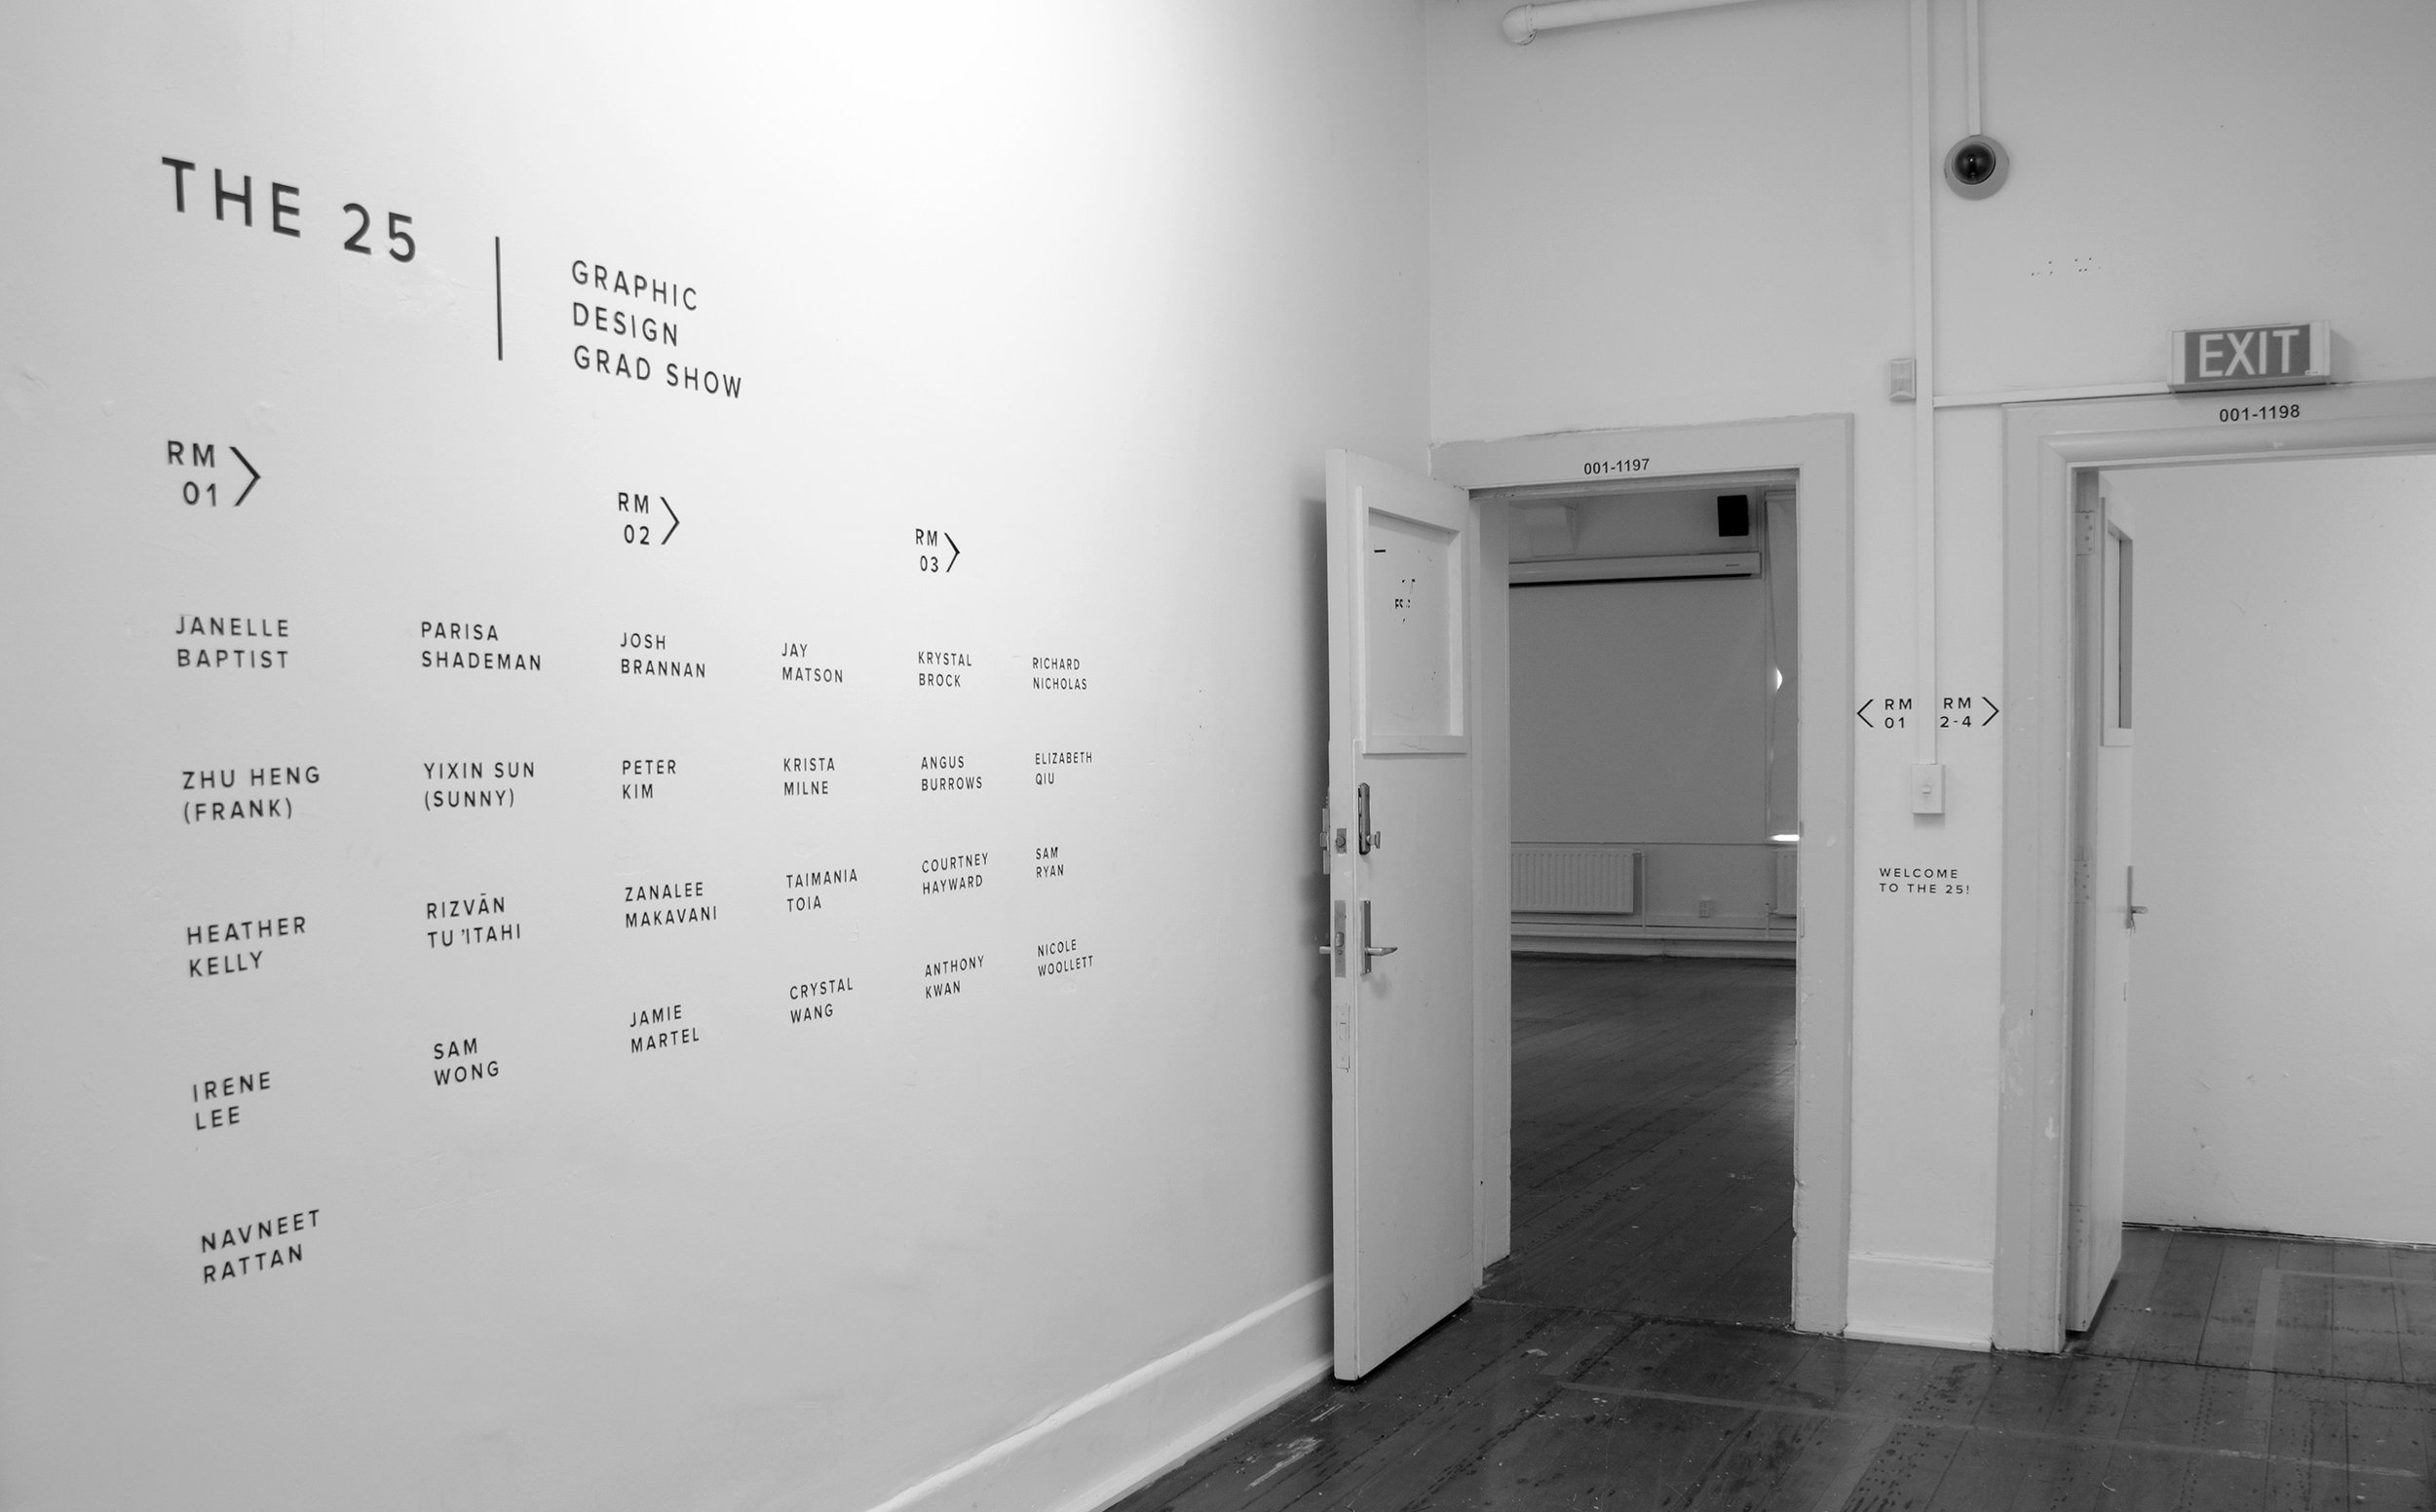 Vinyl cut wayfinding, showing the members and which rooms they were displaying in